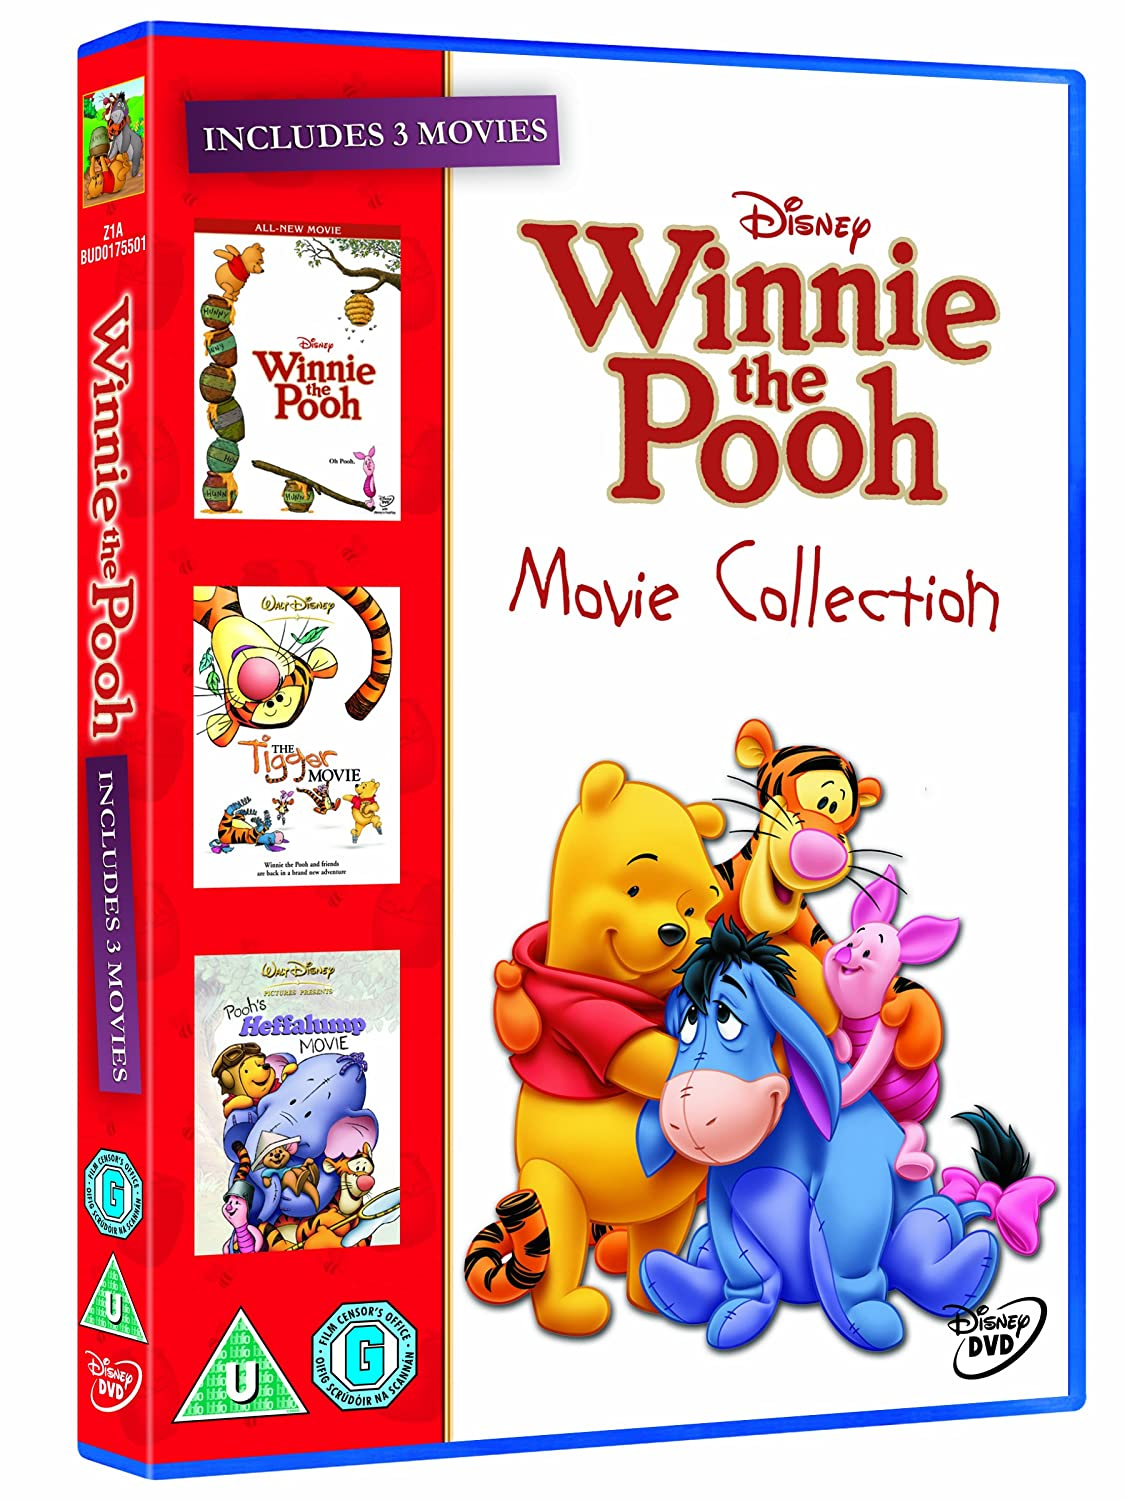 The Winnie the Pooh Movie Collection (Winnie the Pooh Movie/ Heffalump Movie/ Tigger Movie) [Region 2] [UK Import]